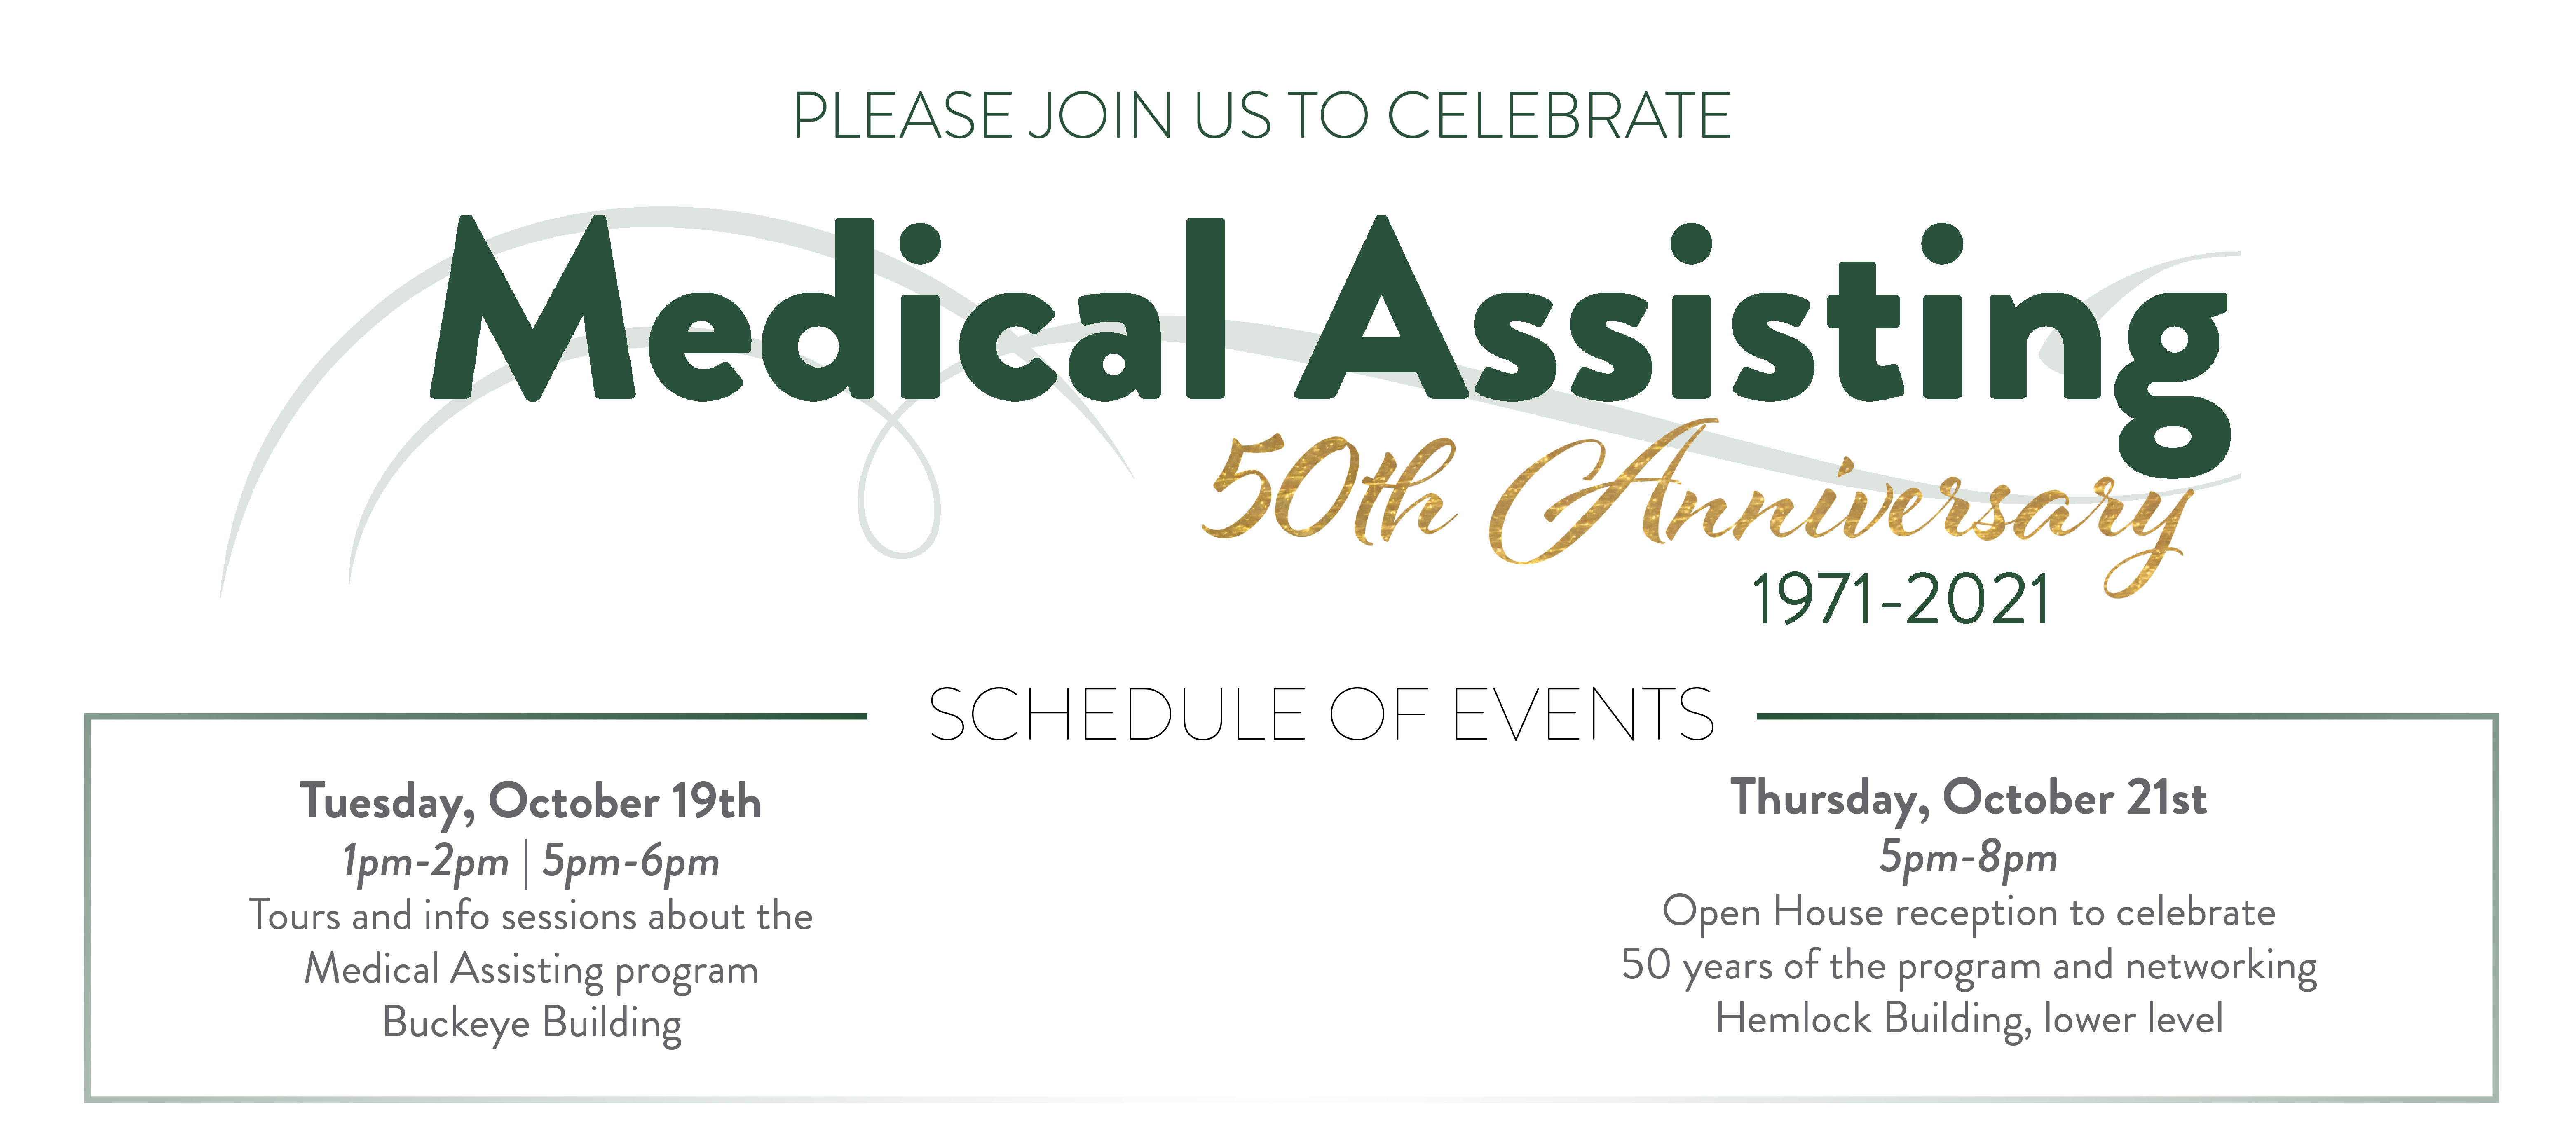 Medical Assisting 50th anniversary. Events include tours and info sessions about the medical assisting program in the buckeye building on Tuesday, October 19th from 1pm to 2pm and from 5pm to 6pm.  Open house reception to celebrate 50 years of the program at the lower level of the hemlock building on Thursday, October 21st from 5pm to 8pm.